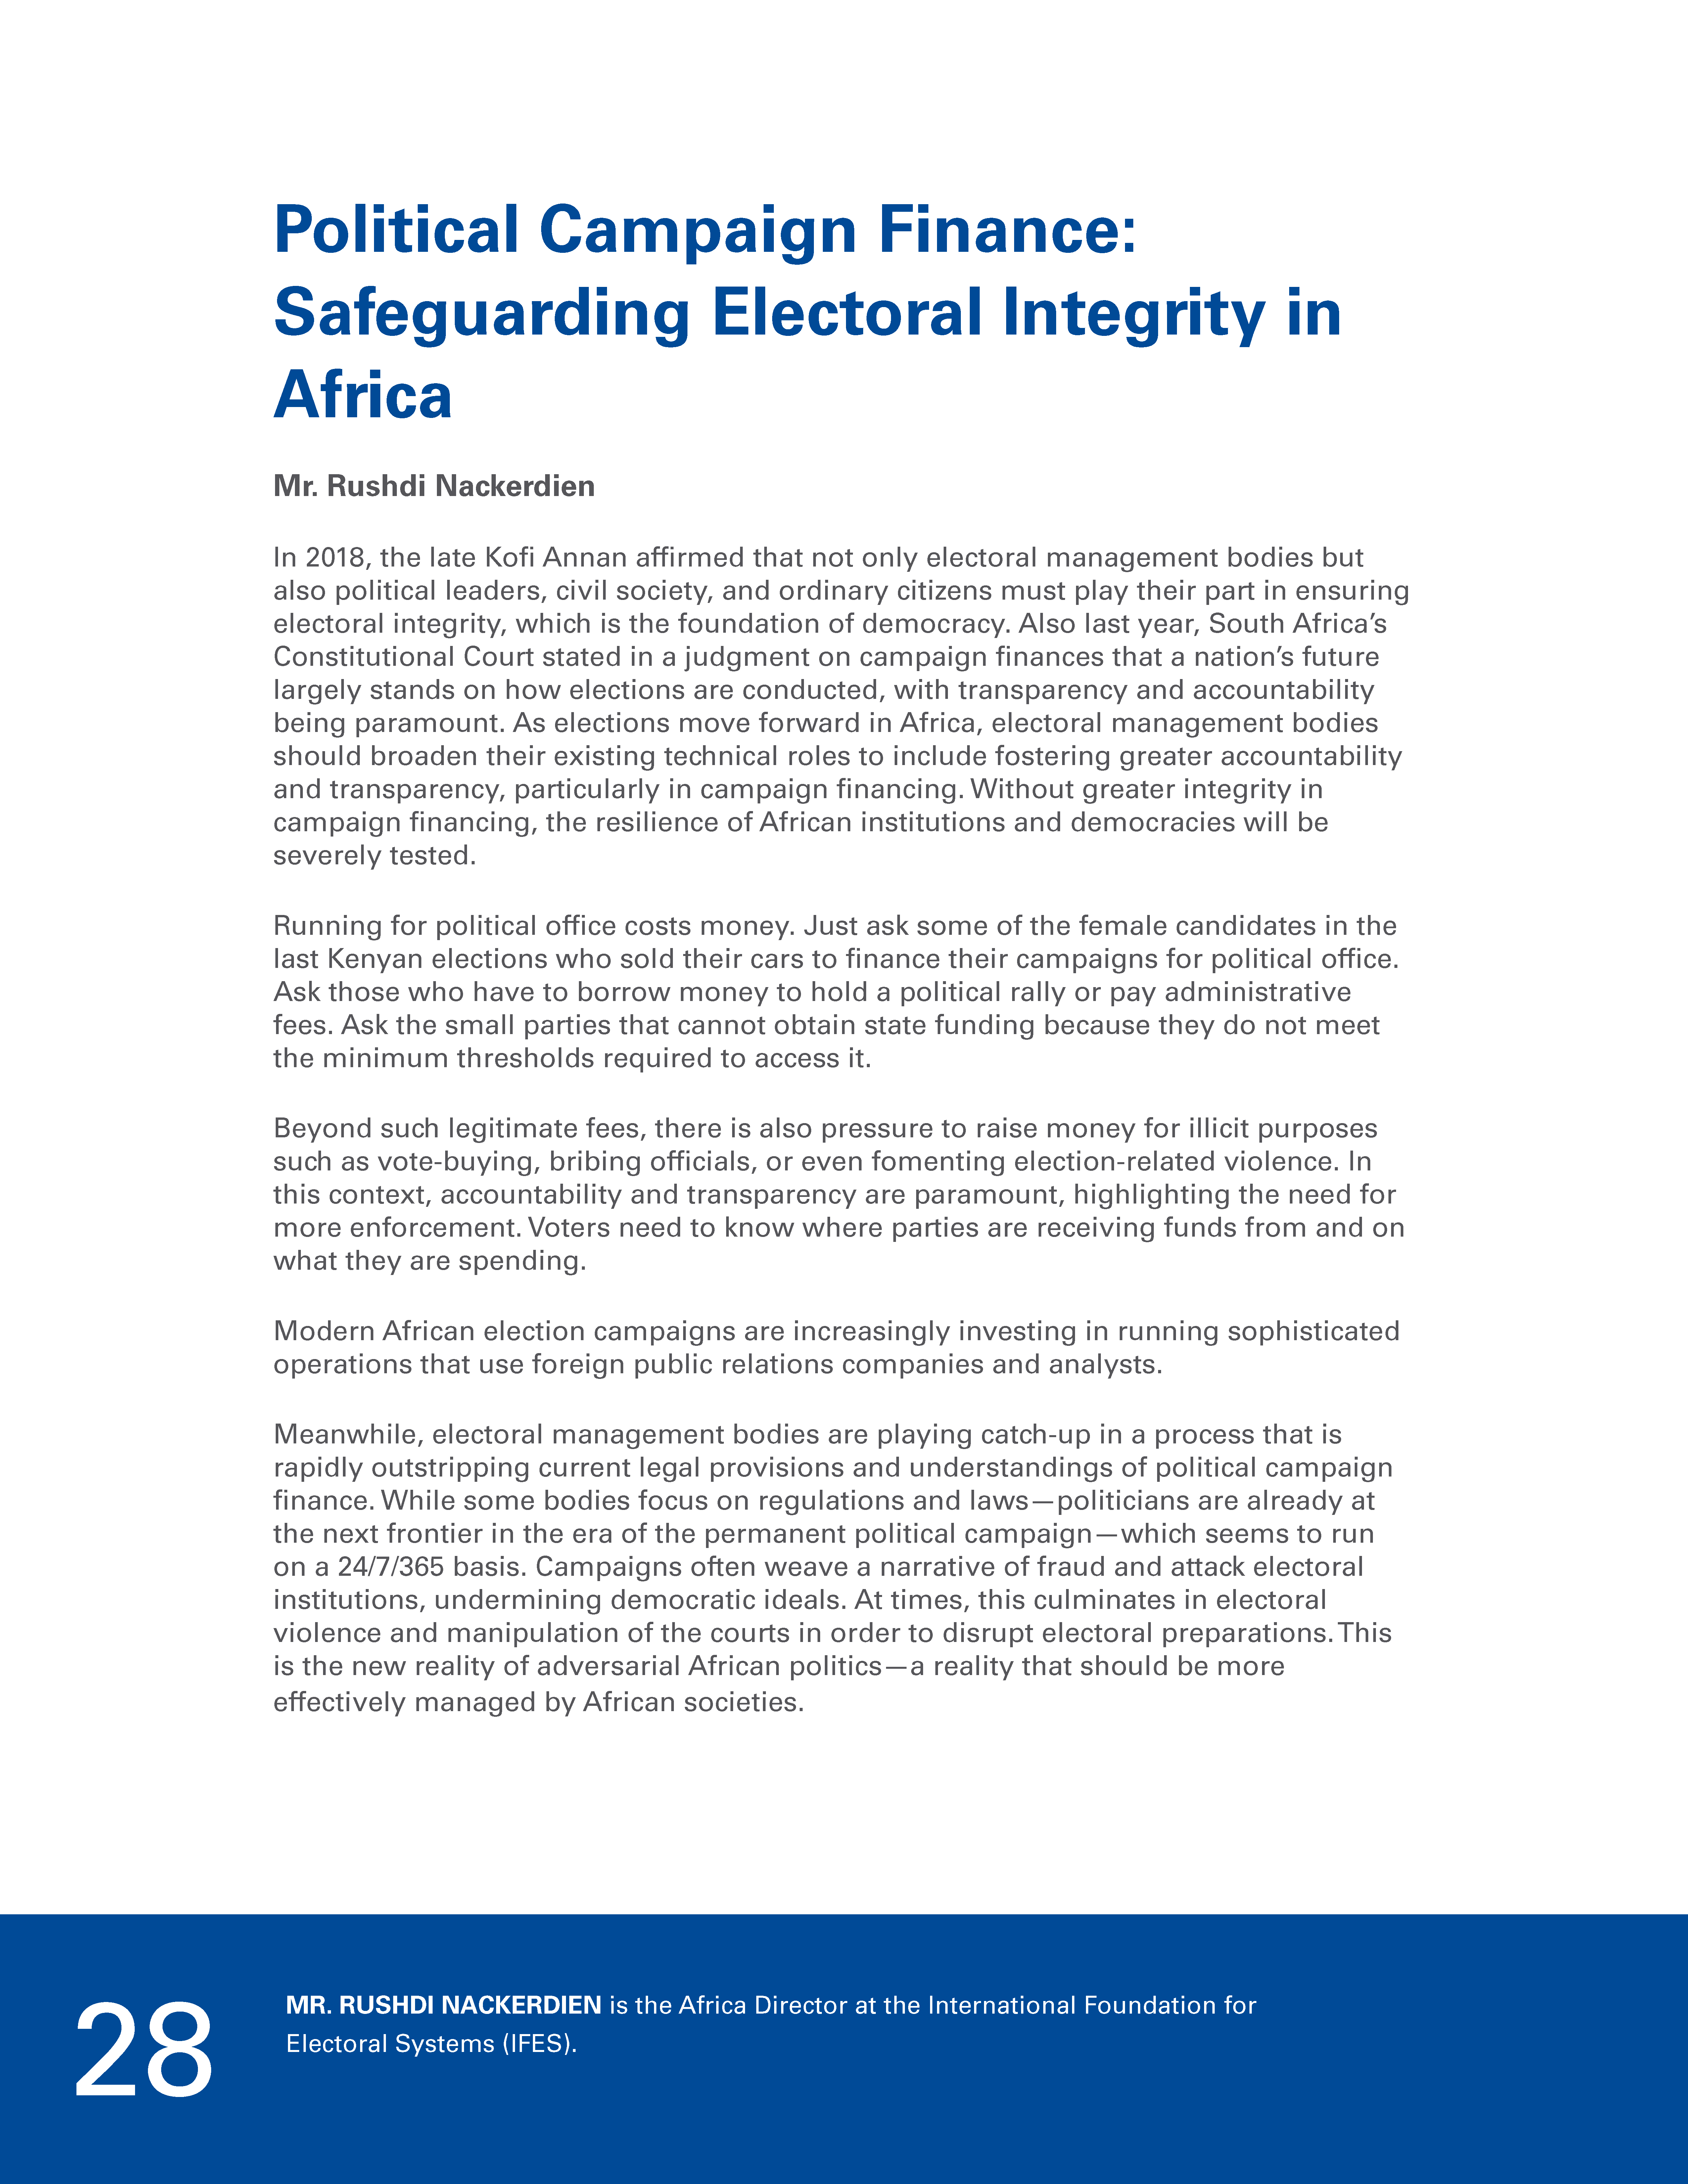 Political Campaign Finance: Safeguarding Electoral Integrity in Africa